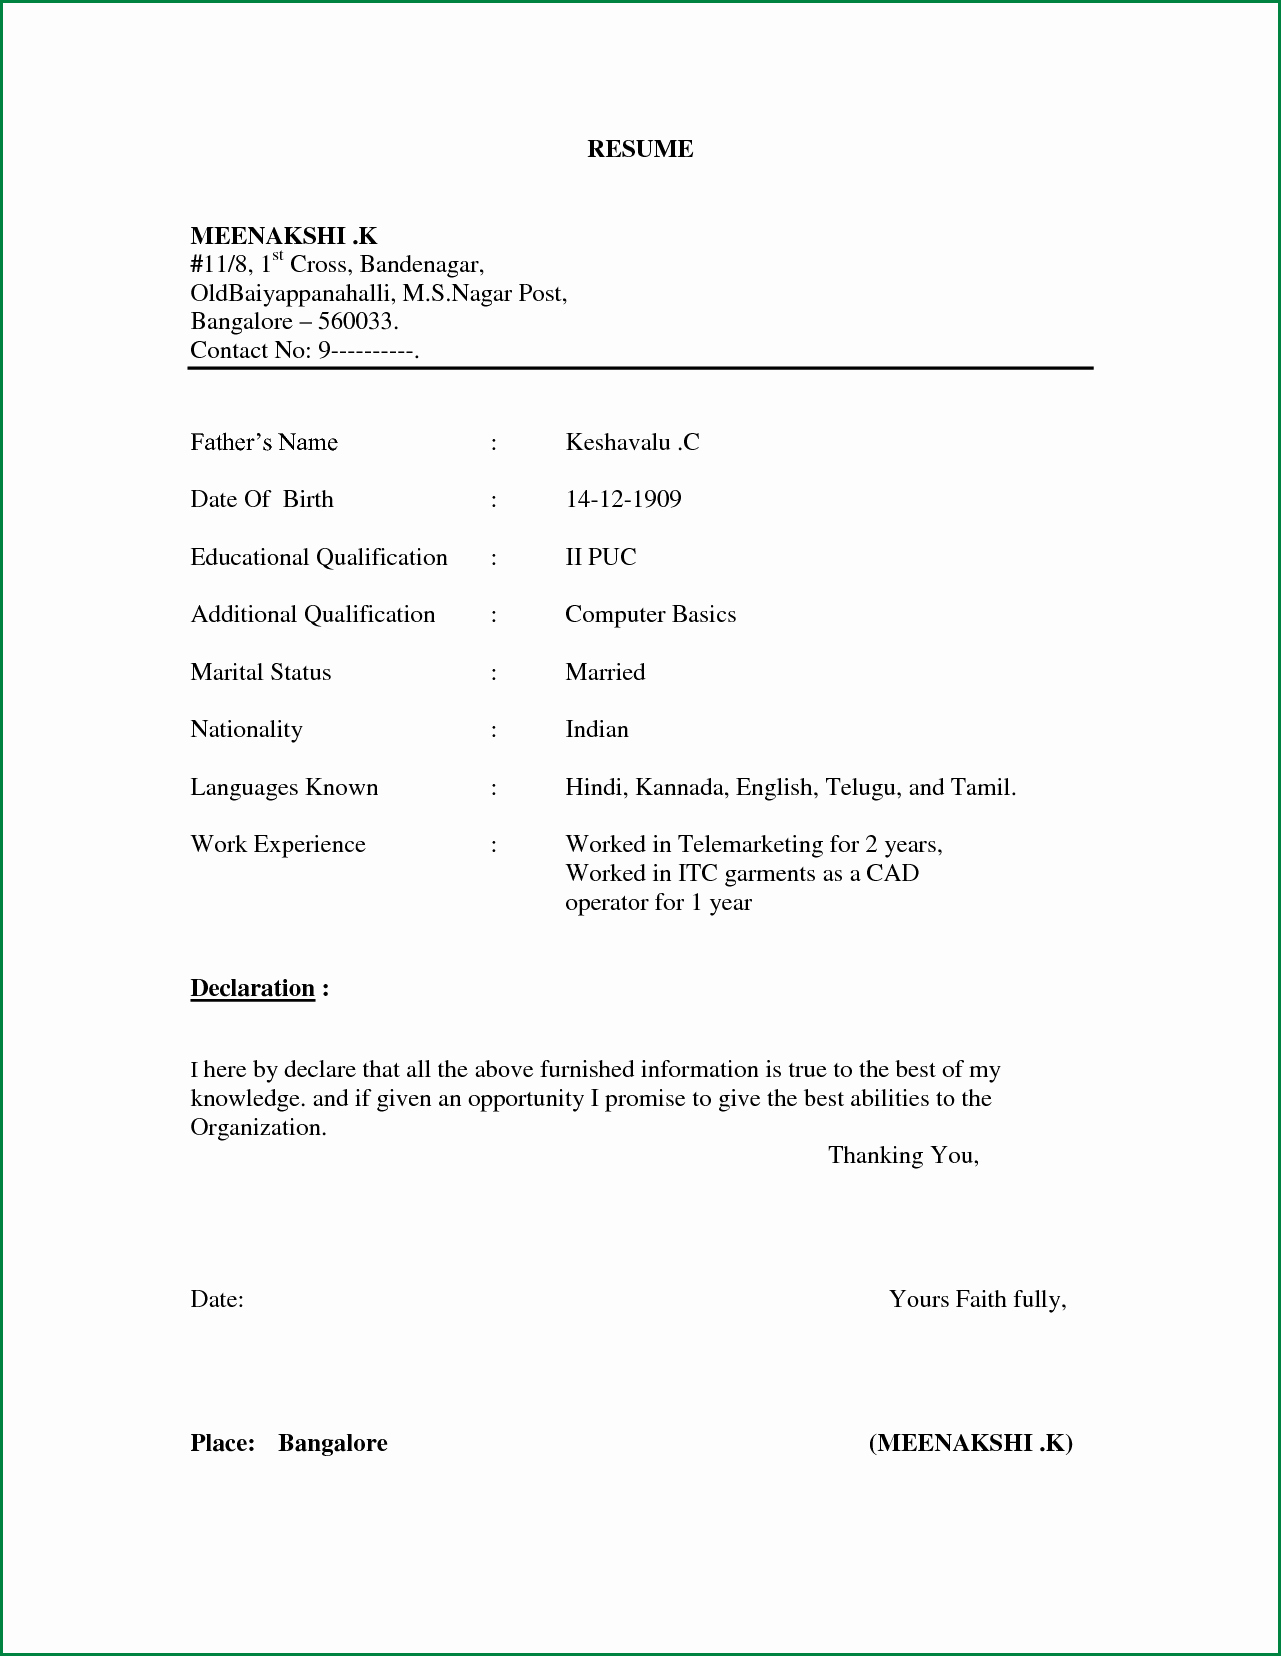 Sample Resumes In Word Best Of Pin by Mukesh Kaushik On Worded